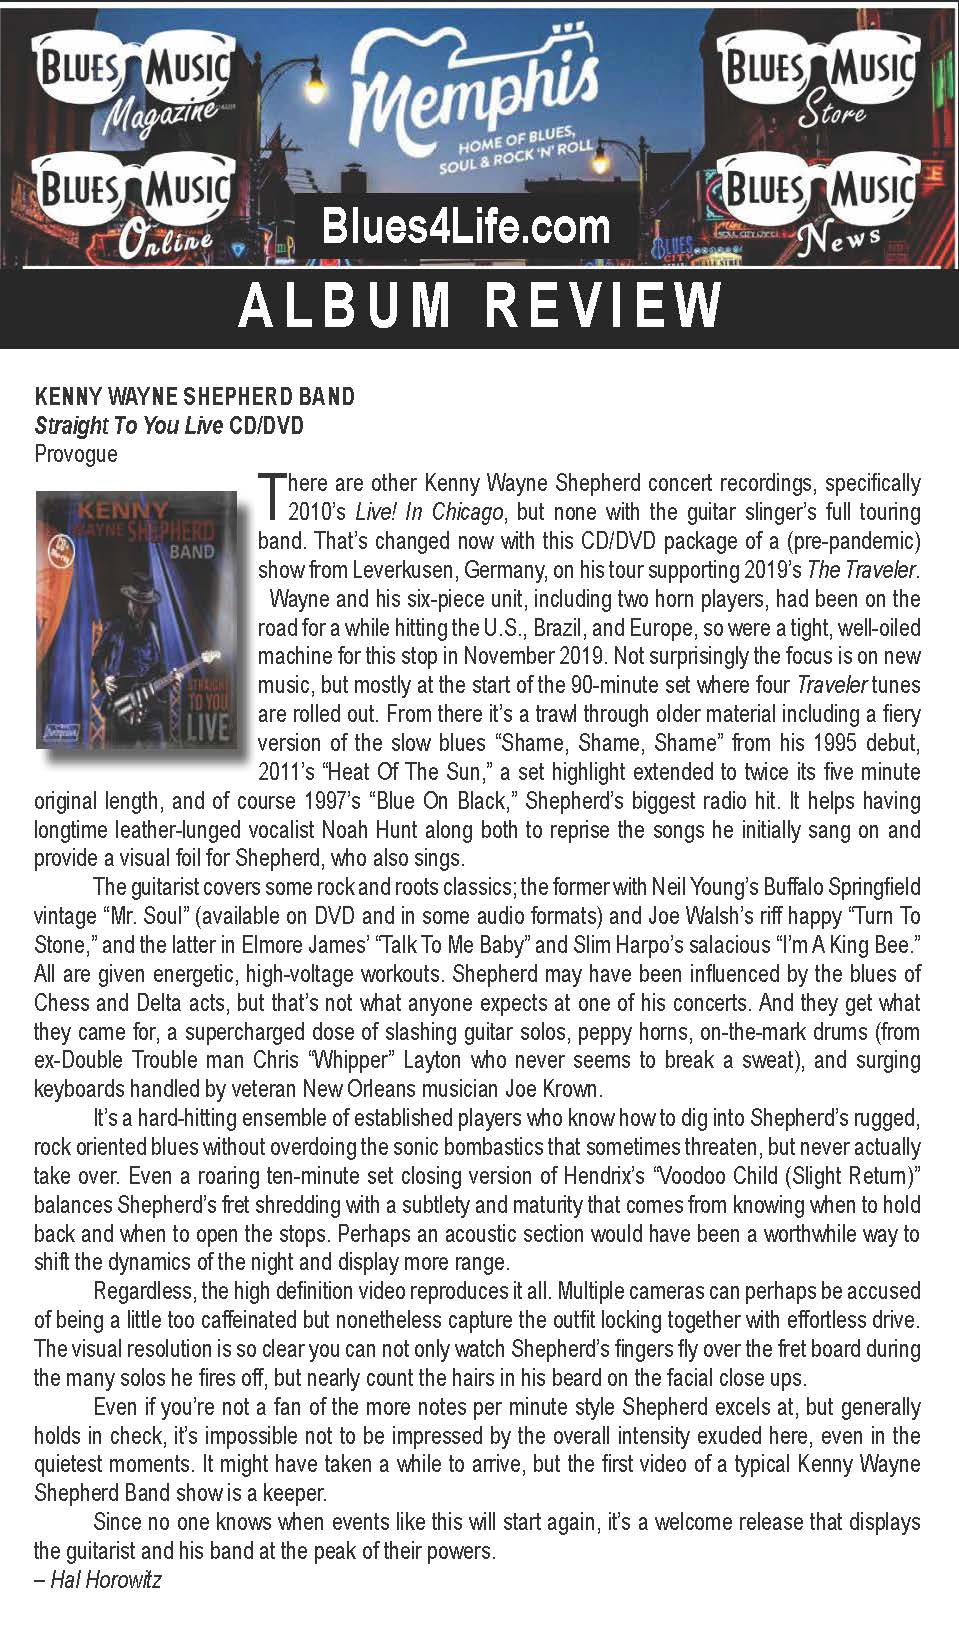 blues-music-online-kenny-wayne-shepherd-nov.-22-2020-page-16.jpg